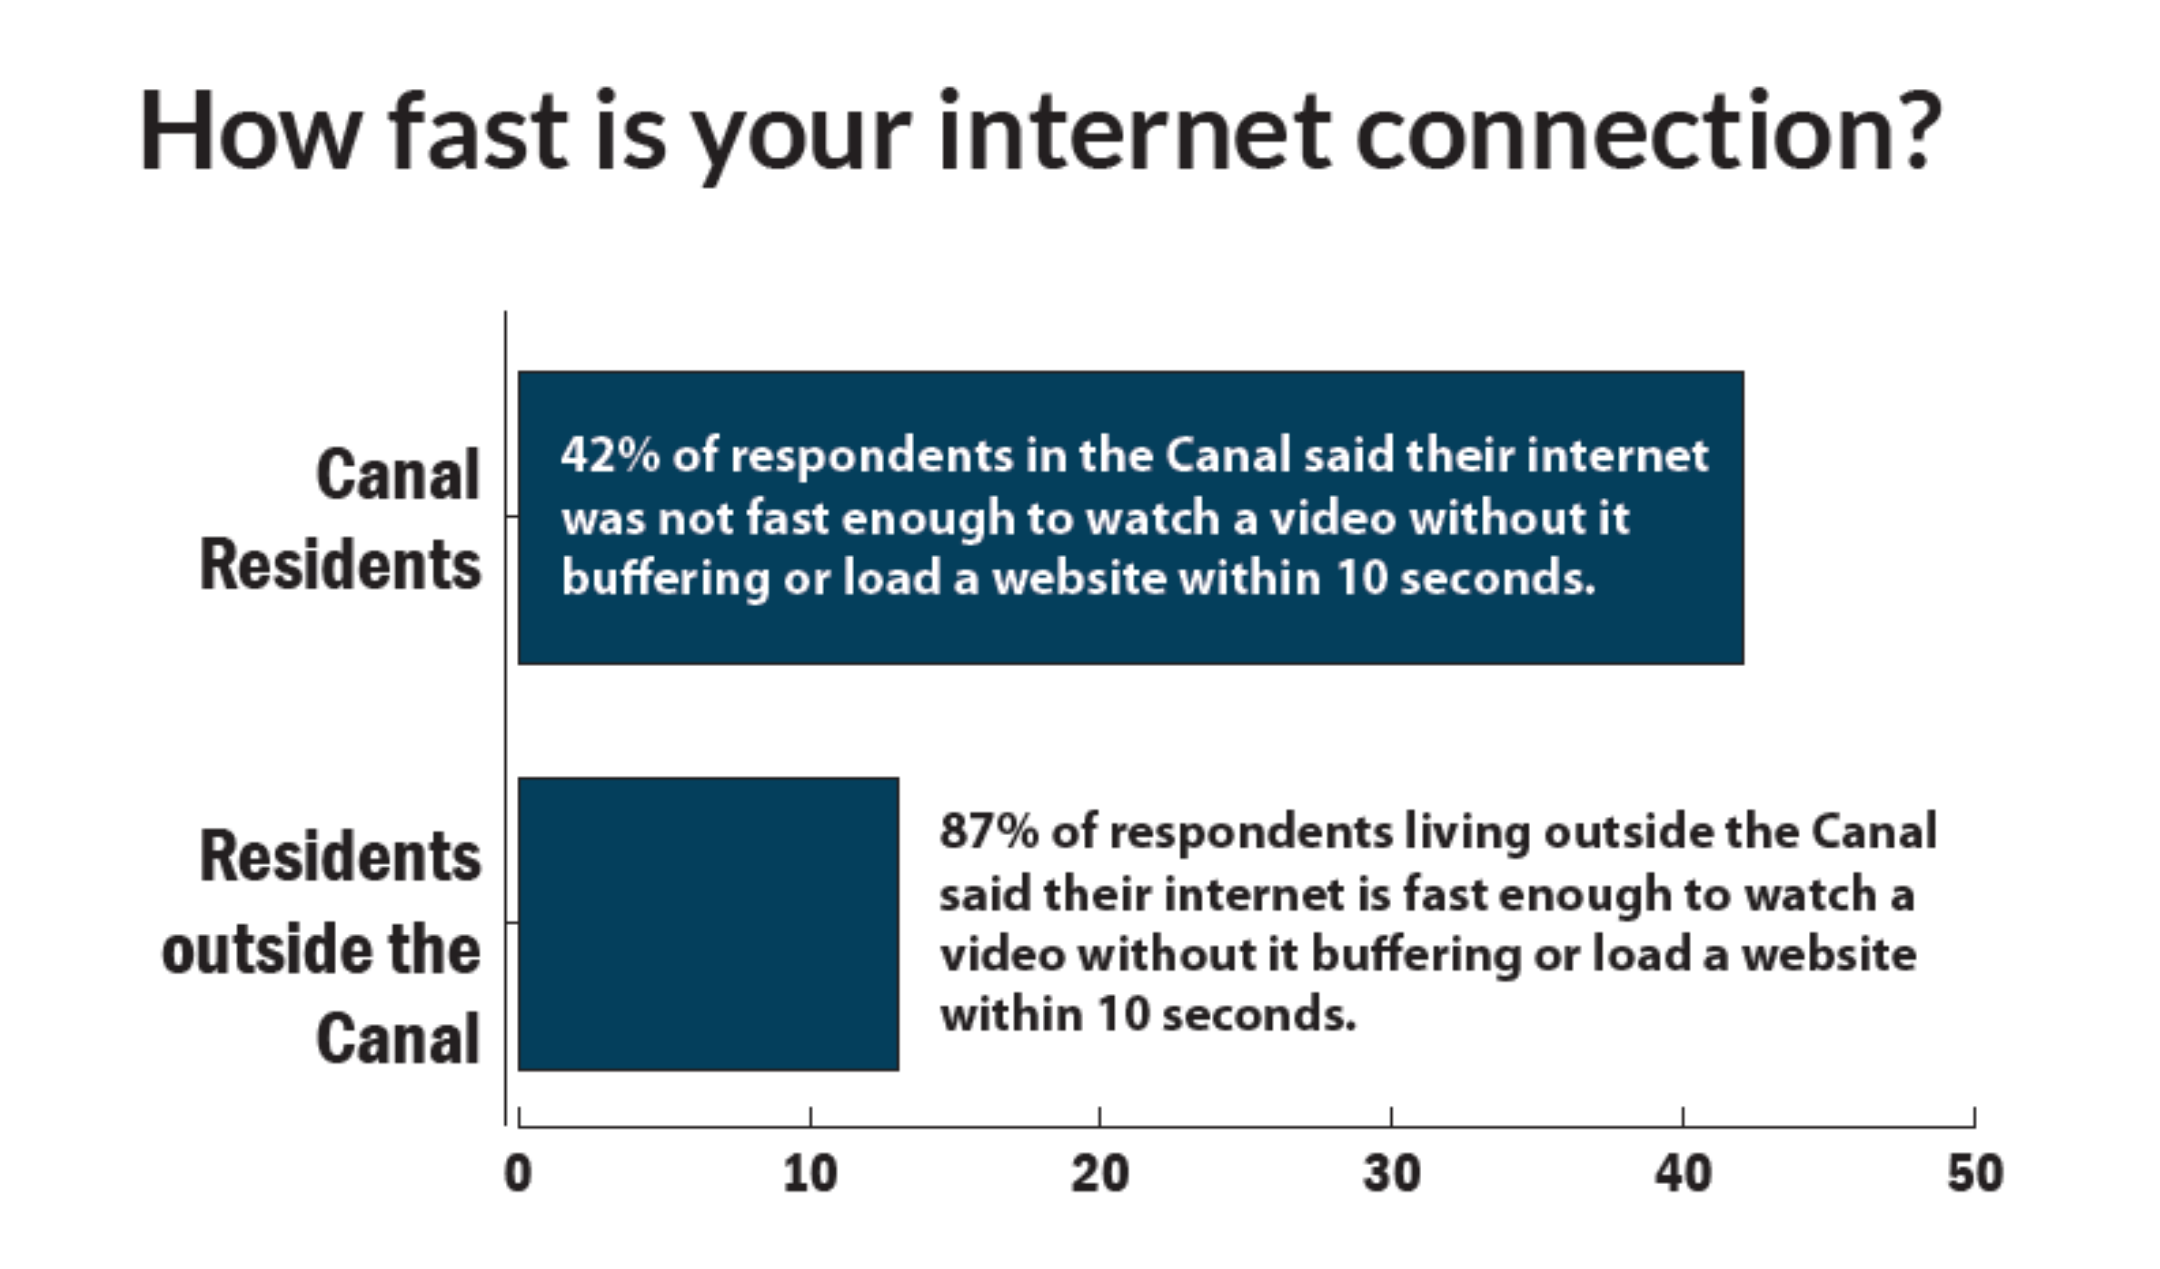 How fast is your internet connection?